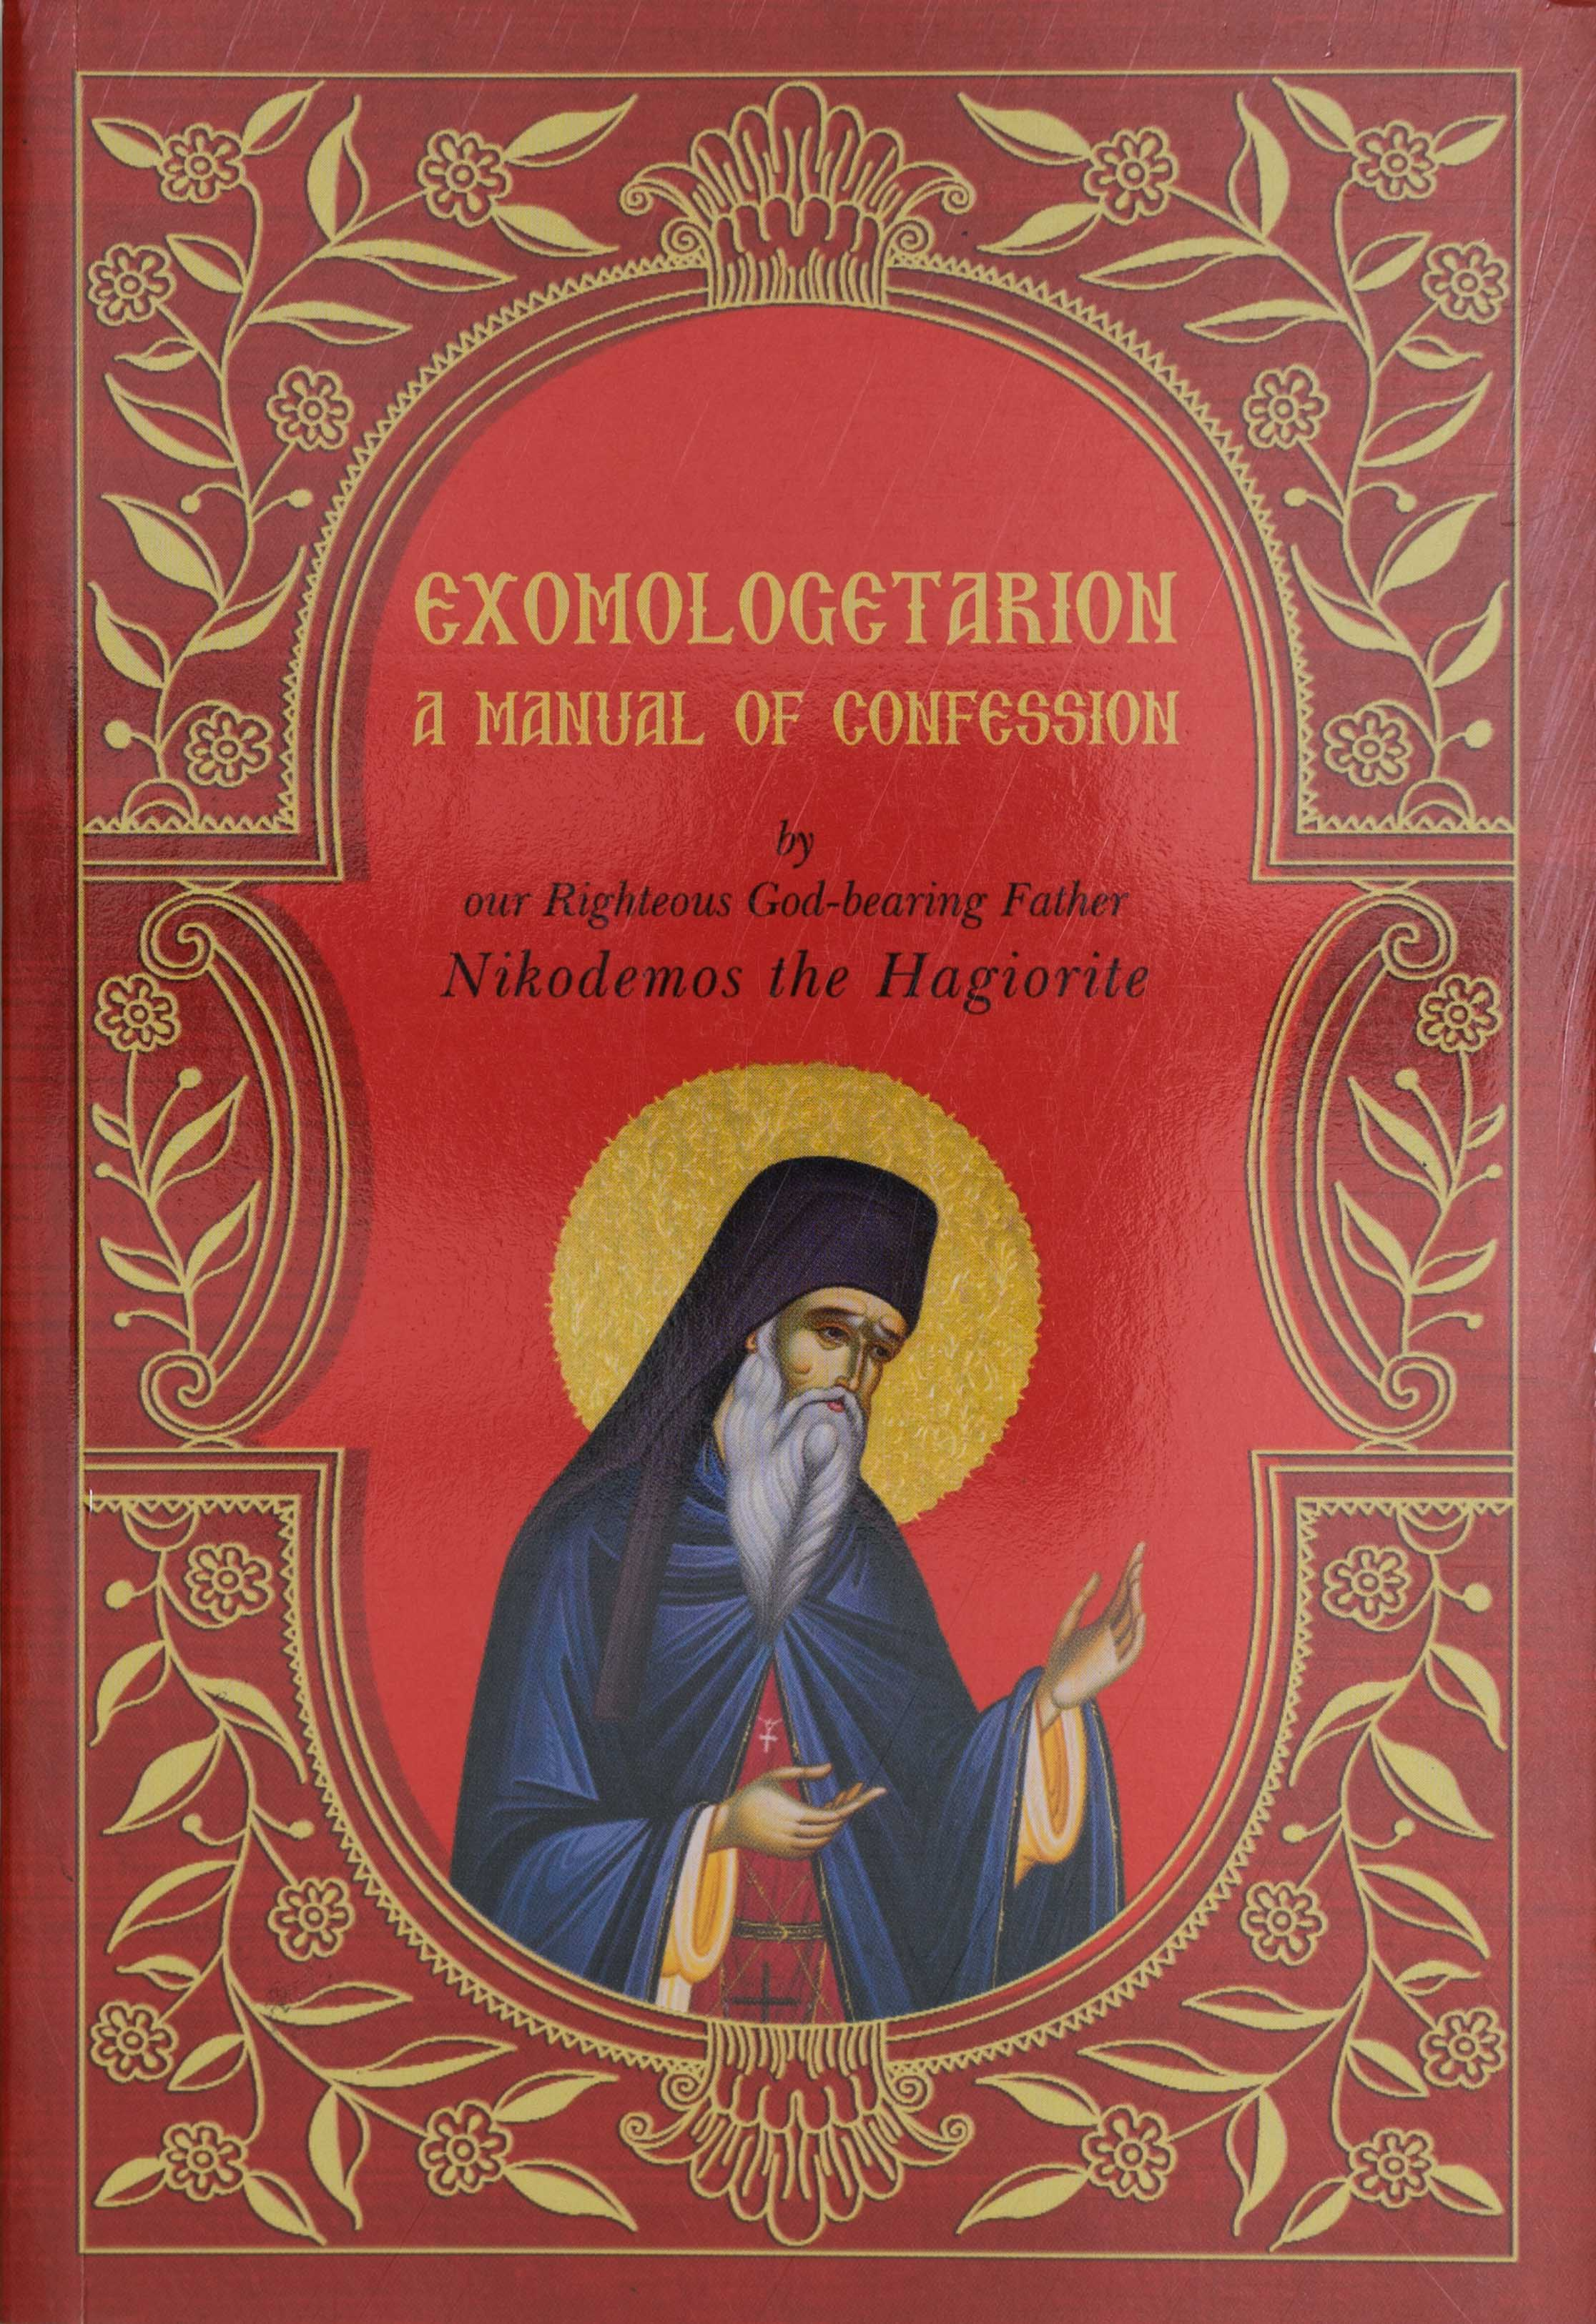 Exomologetarion: A Manual of Confession                                 Out of Stock